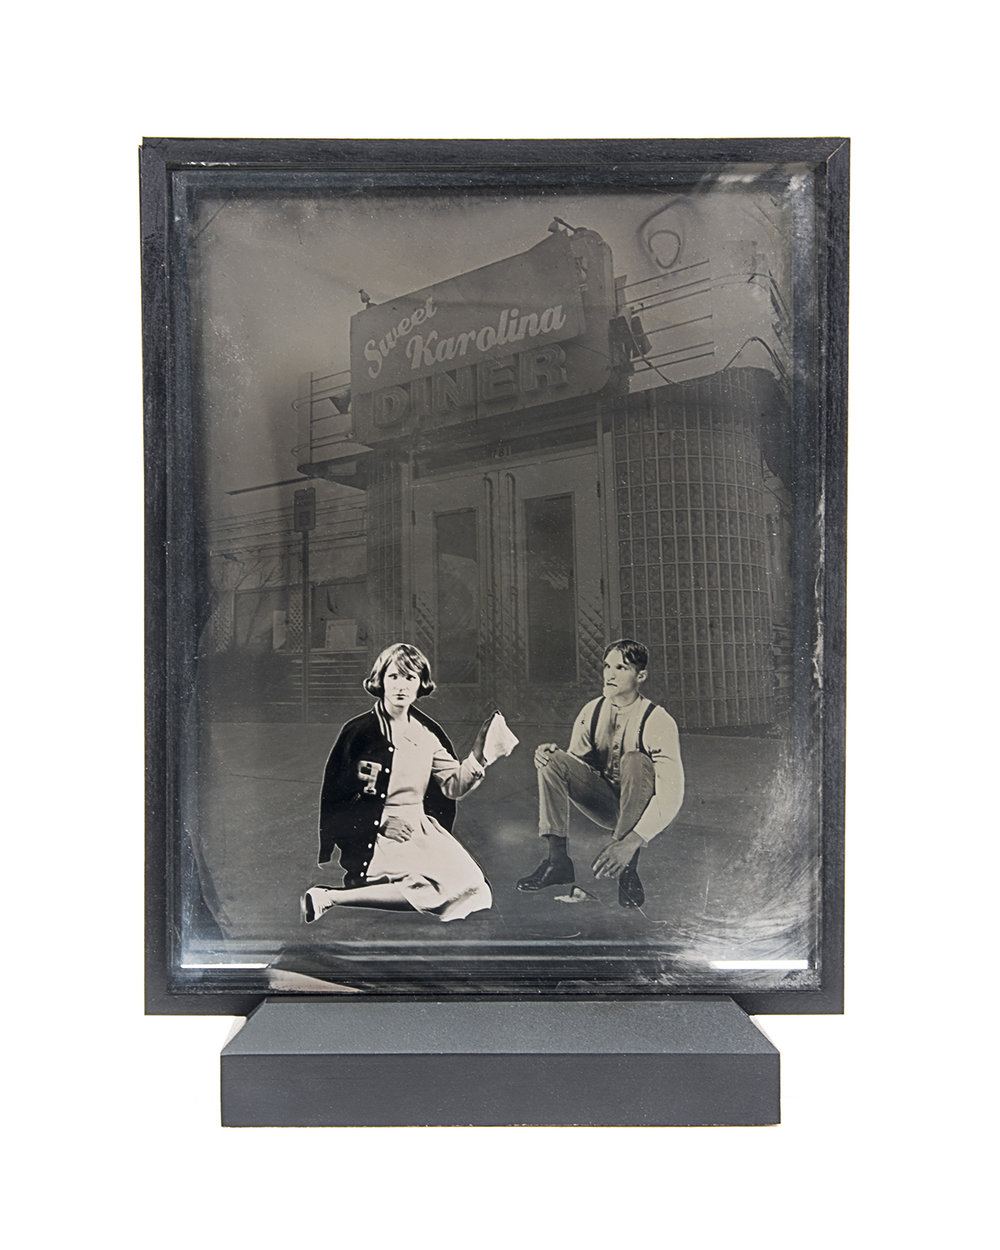 Diner 15 , layered ambrotypes, cut vinyl, glass, artist-made frame